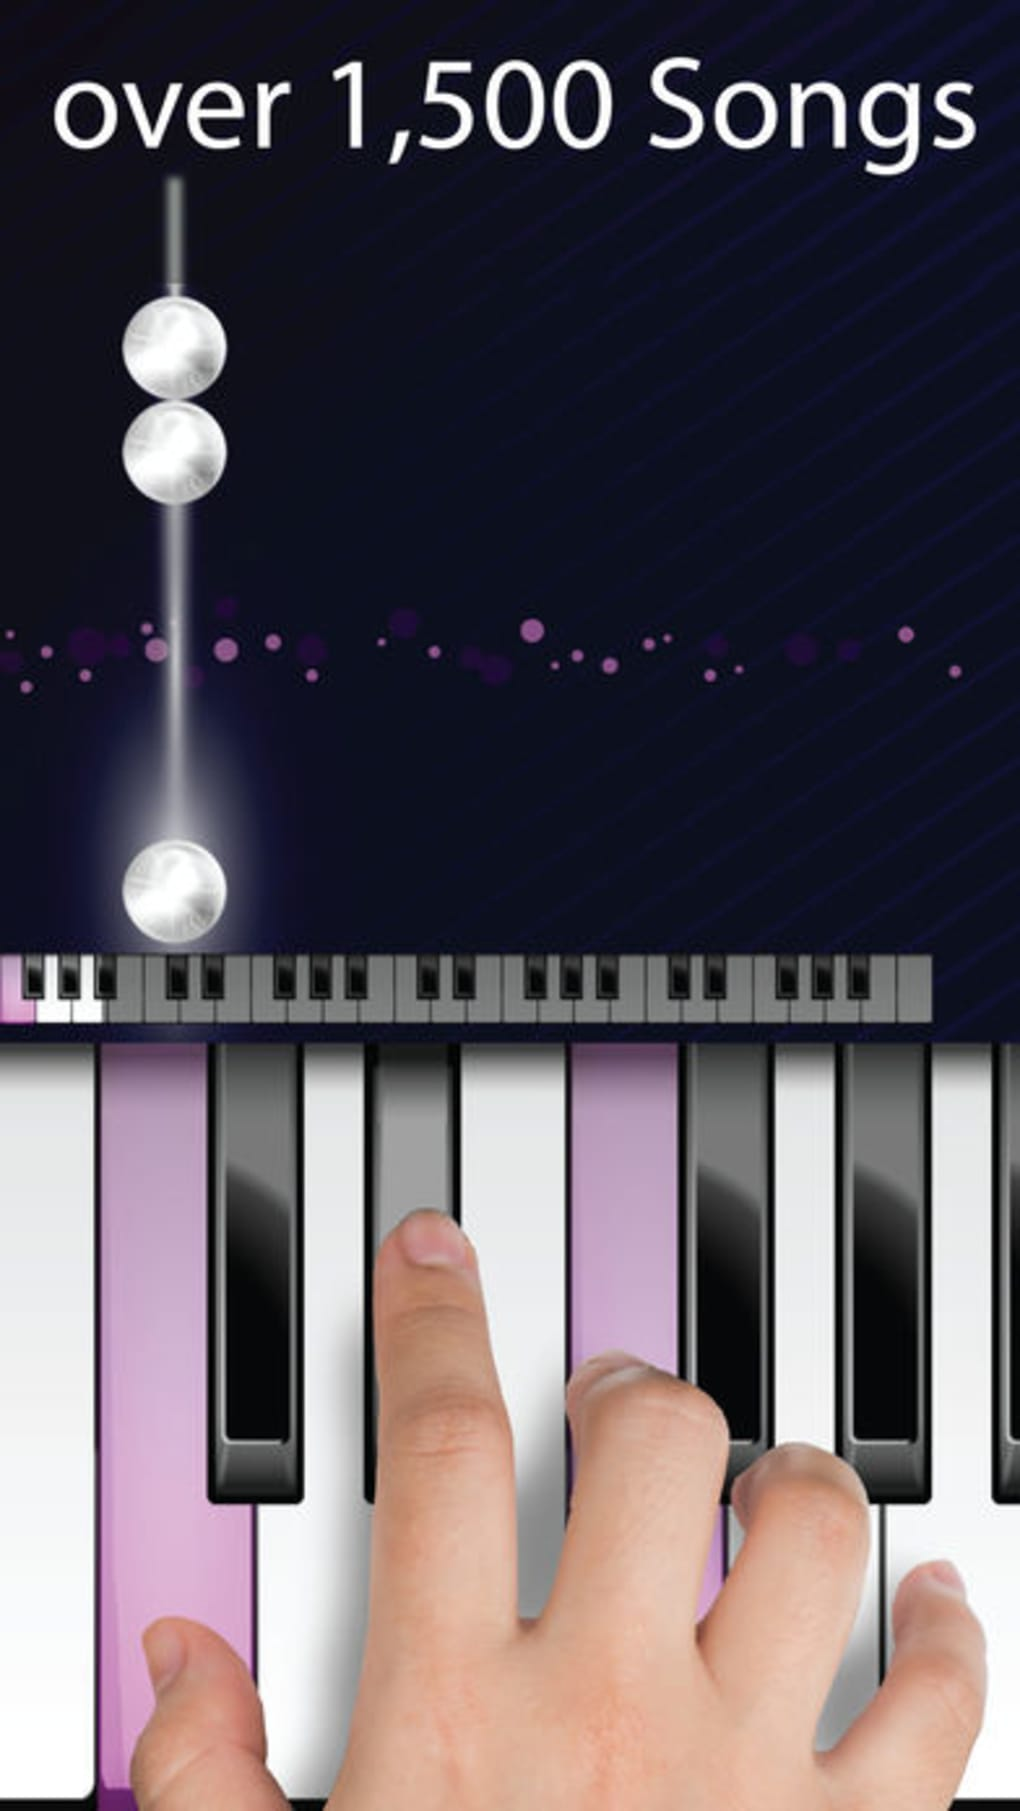 Piano With Songs- Learn to Play Piano Keyboard App for